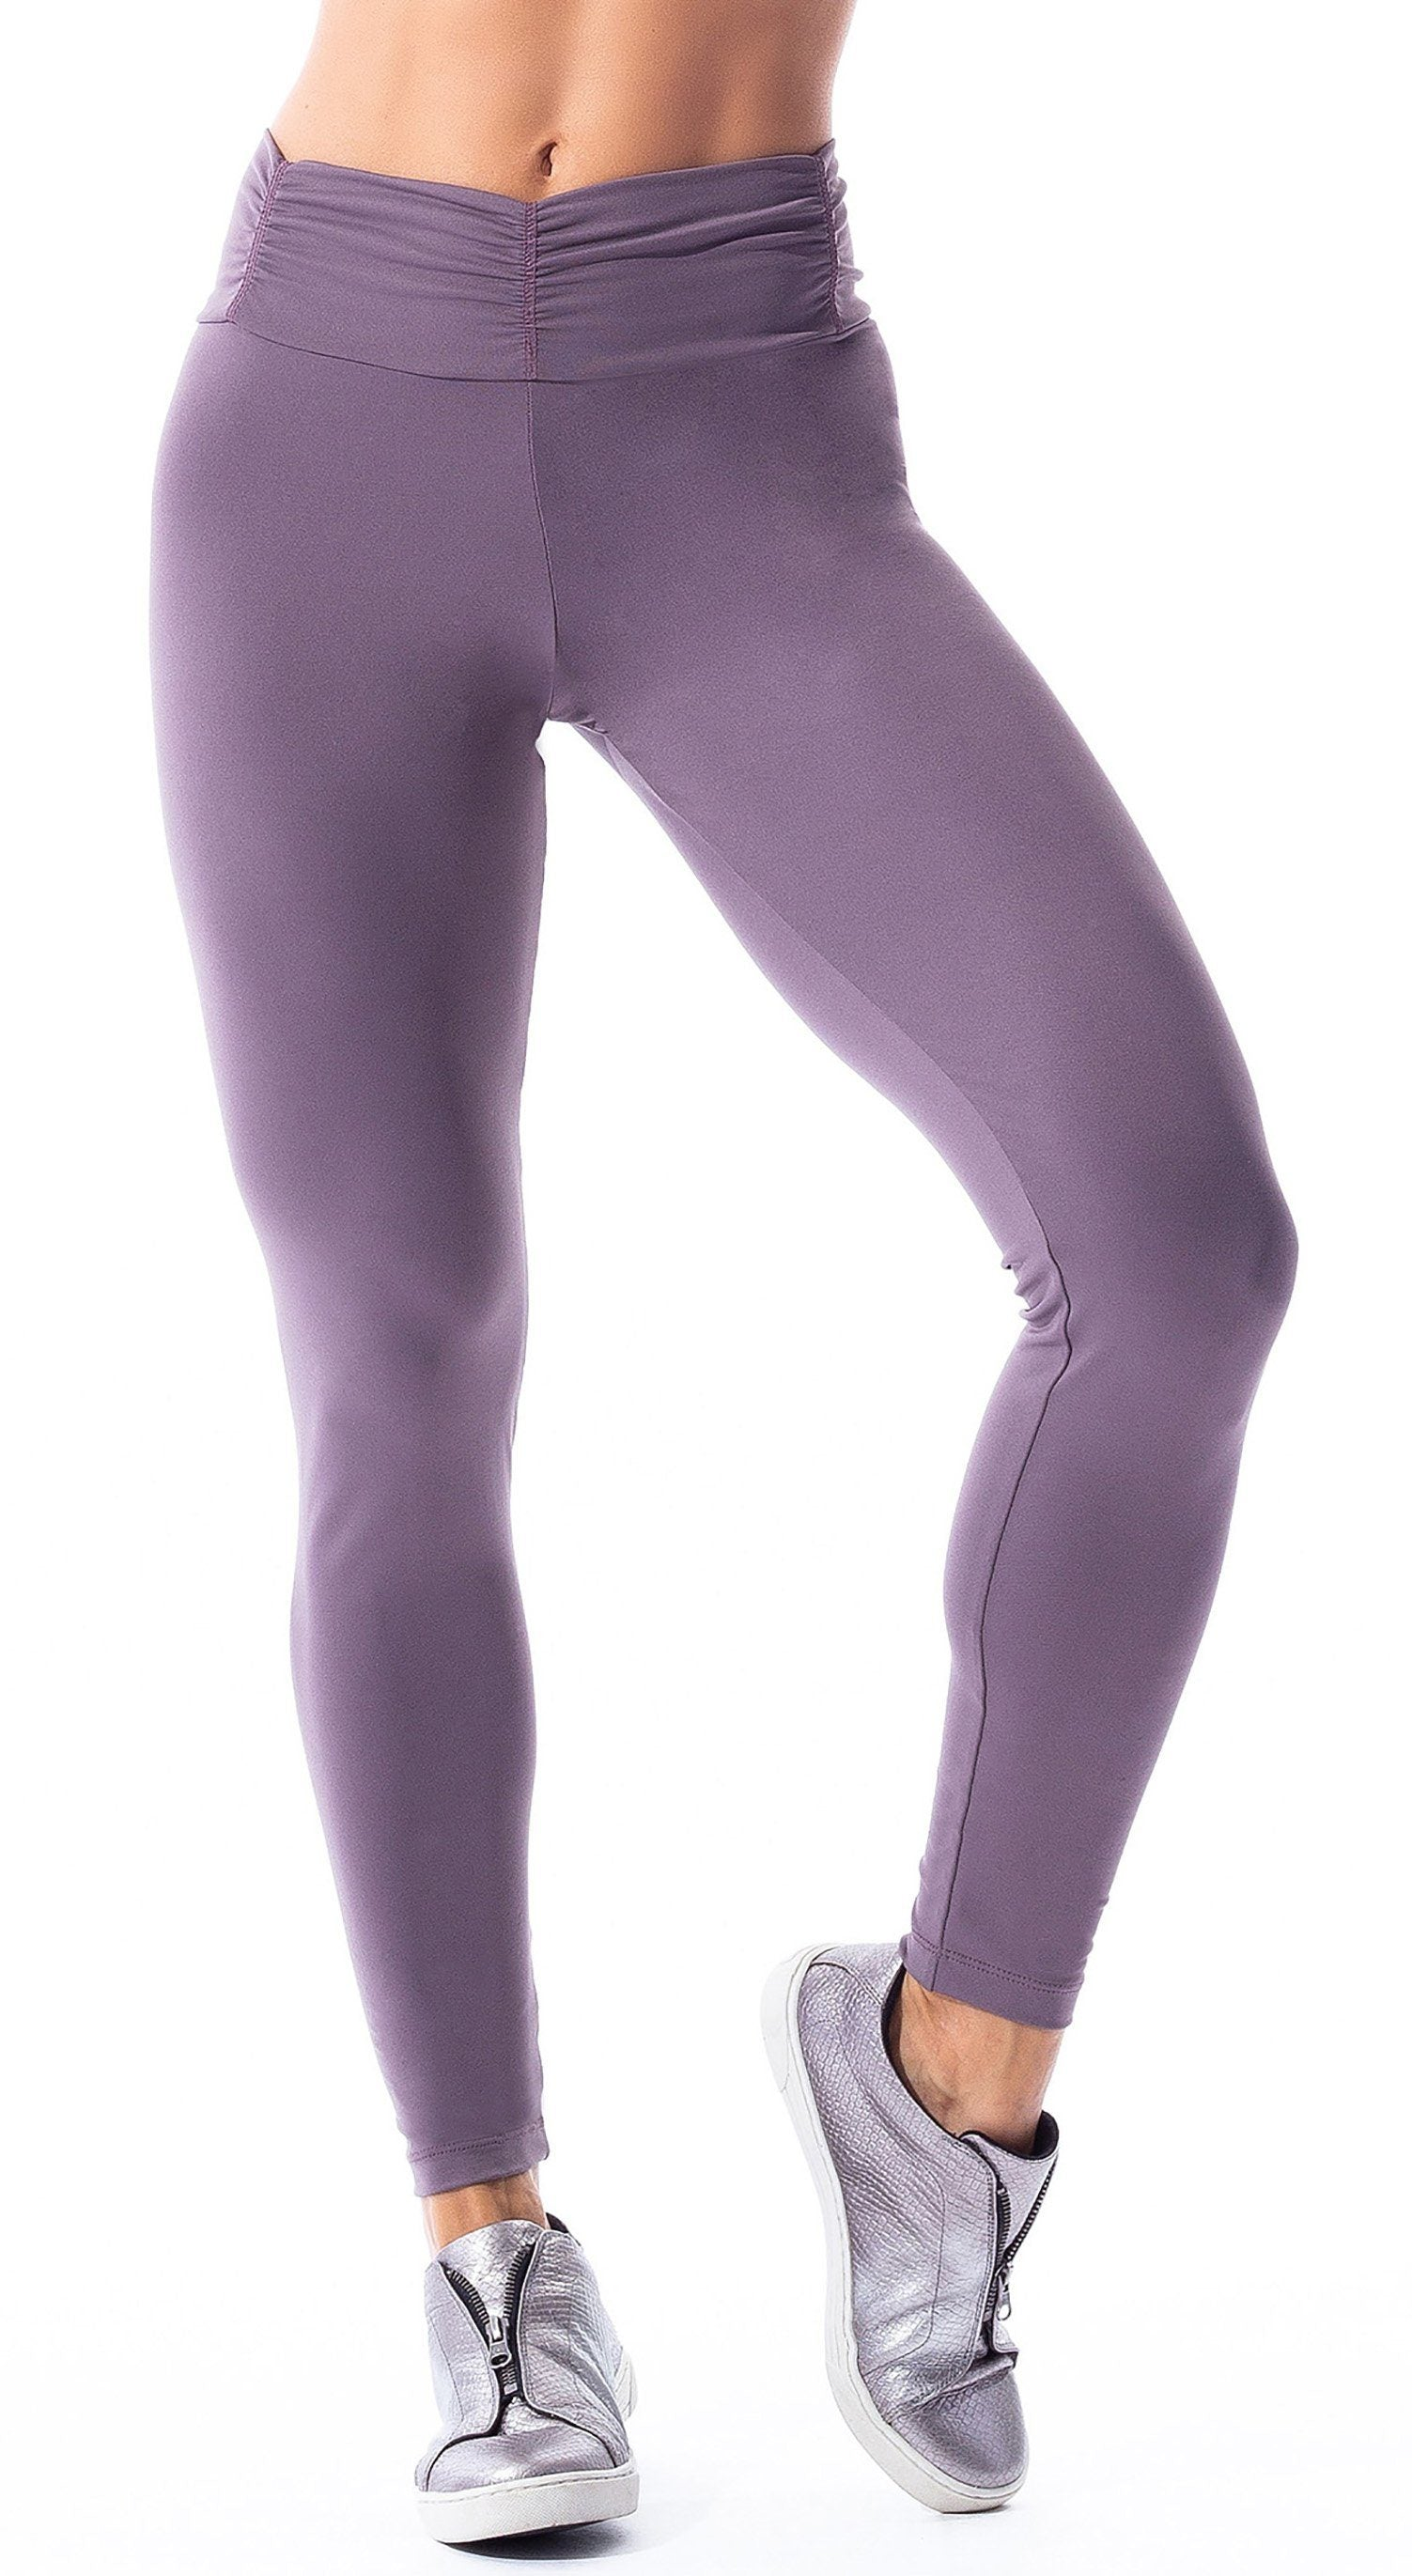 698d007f93bf3e Brazilian Workout Legging | Booty Up Pockets Purple Plum | Top Rio Shop